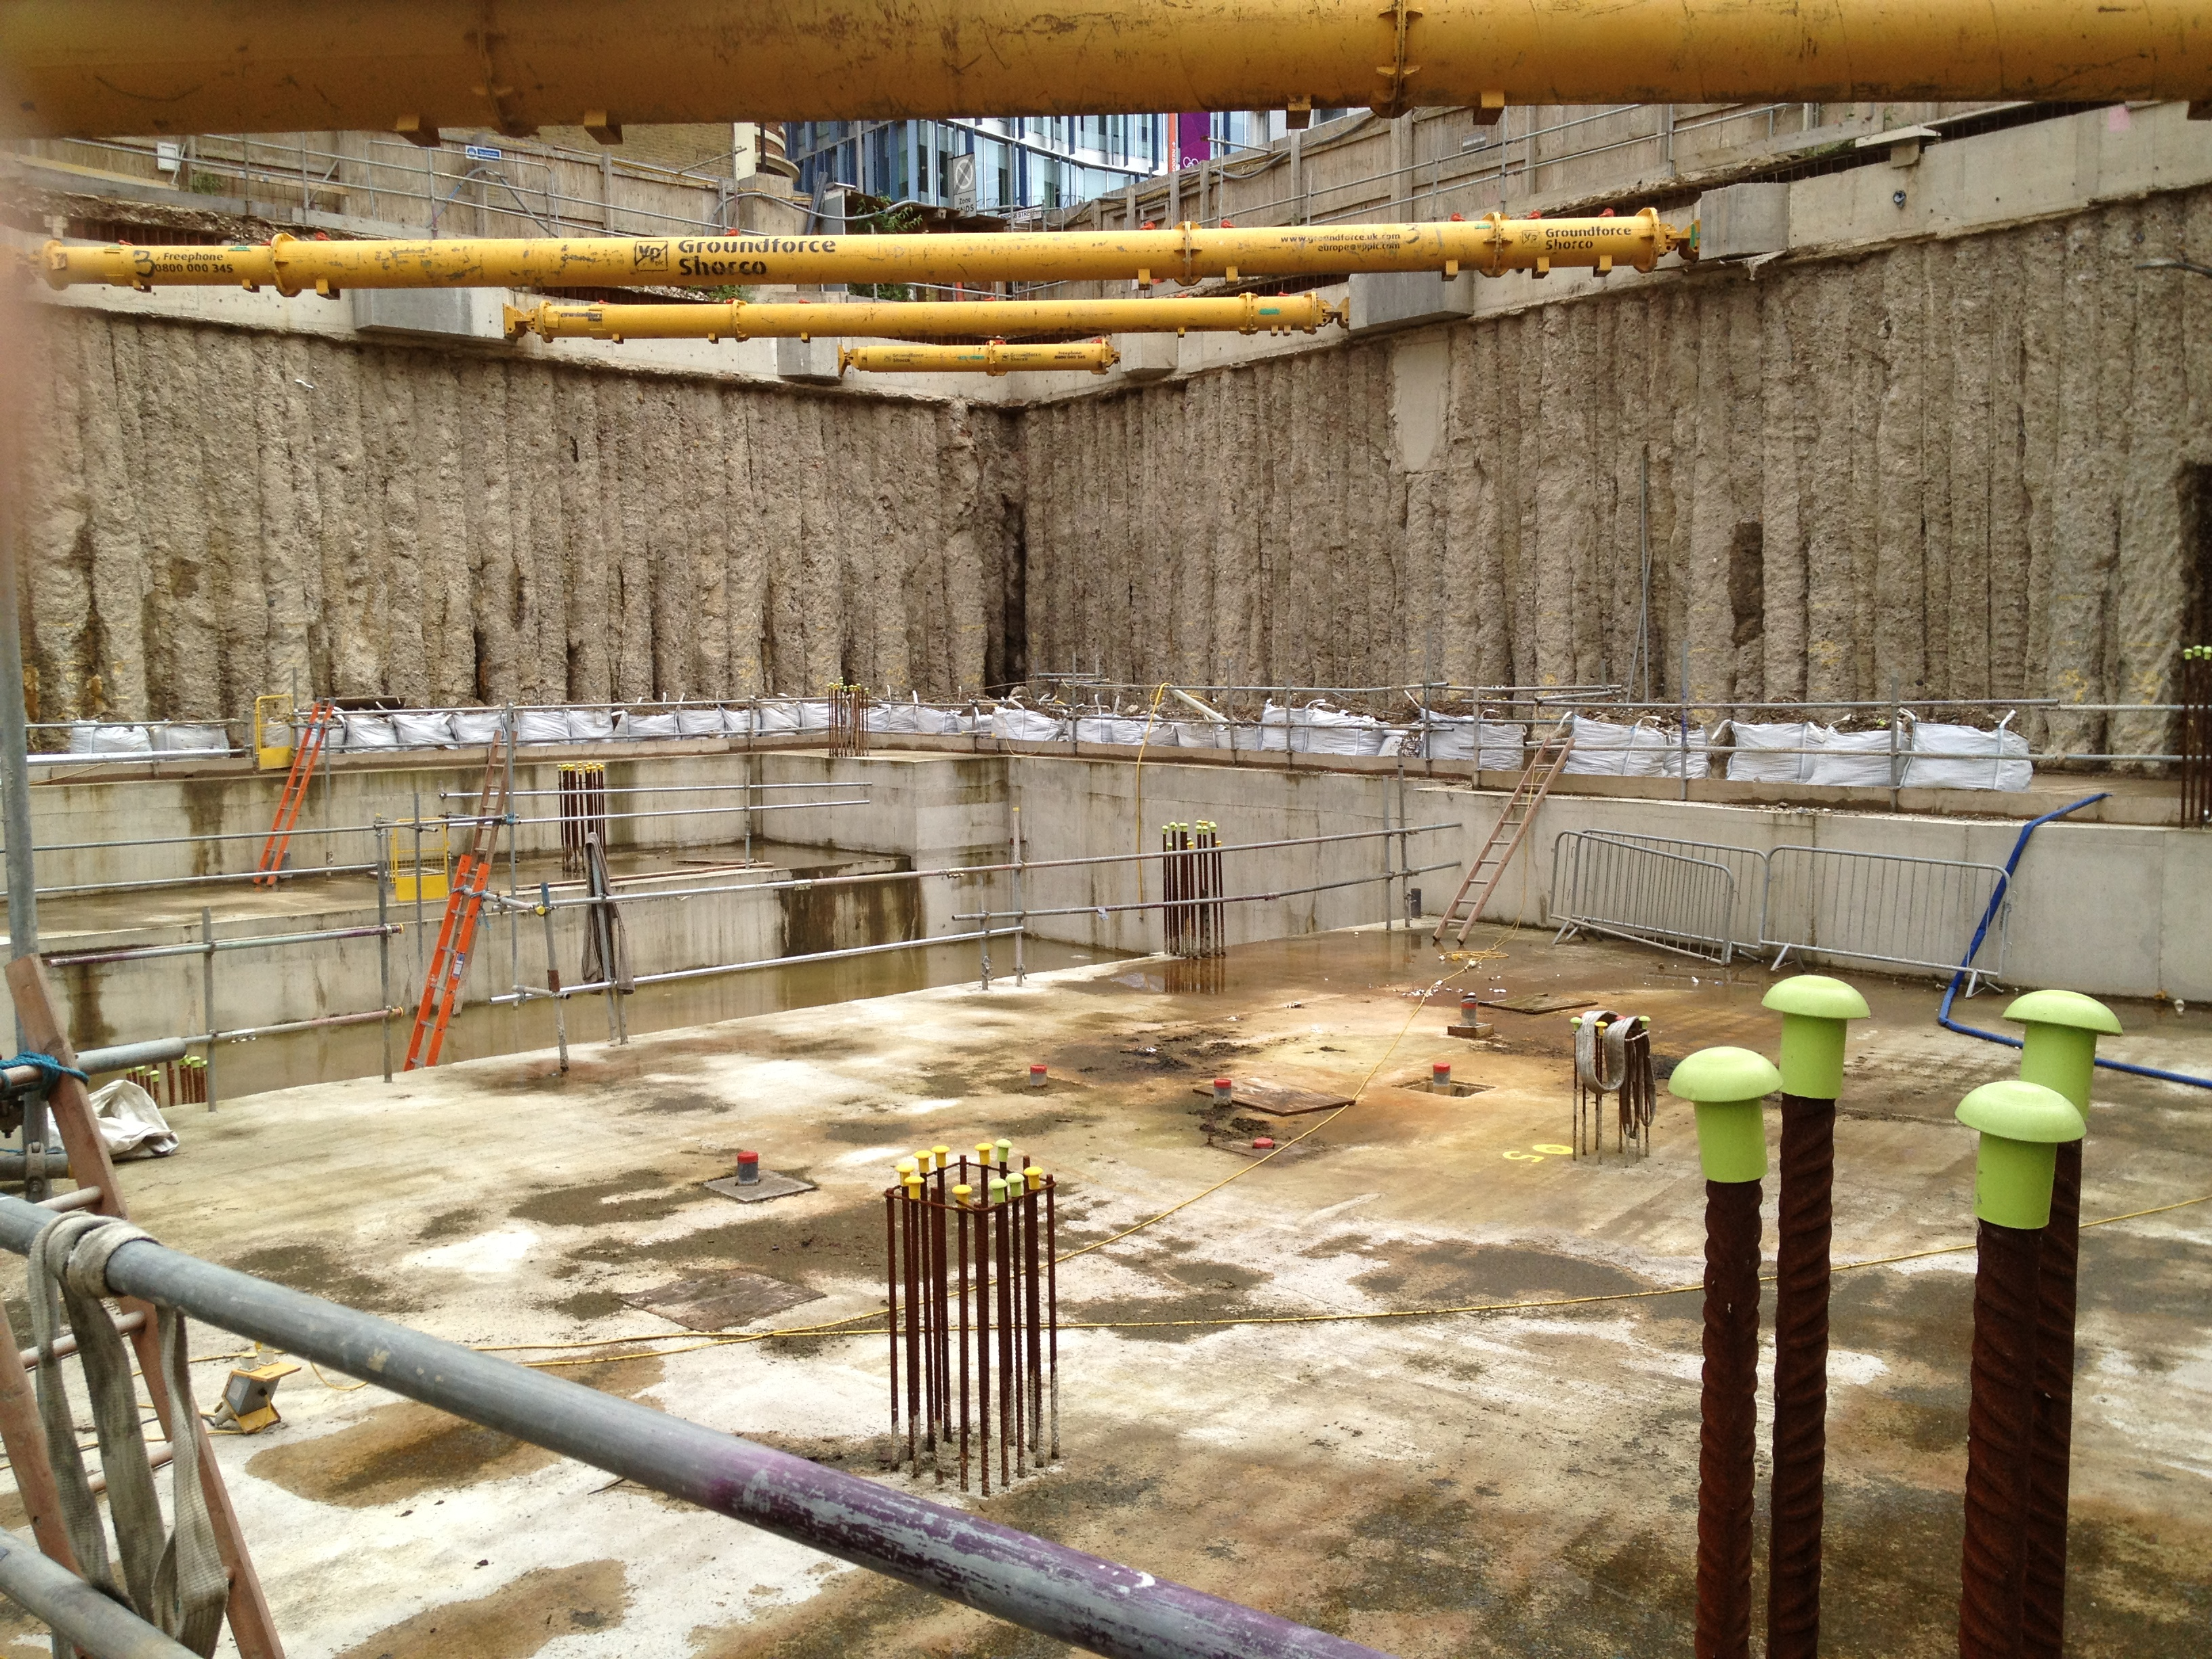 Slurry For Waterproofing Construction Joints In Pools : What you need to know about basement waterproofing design